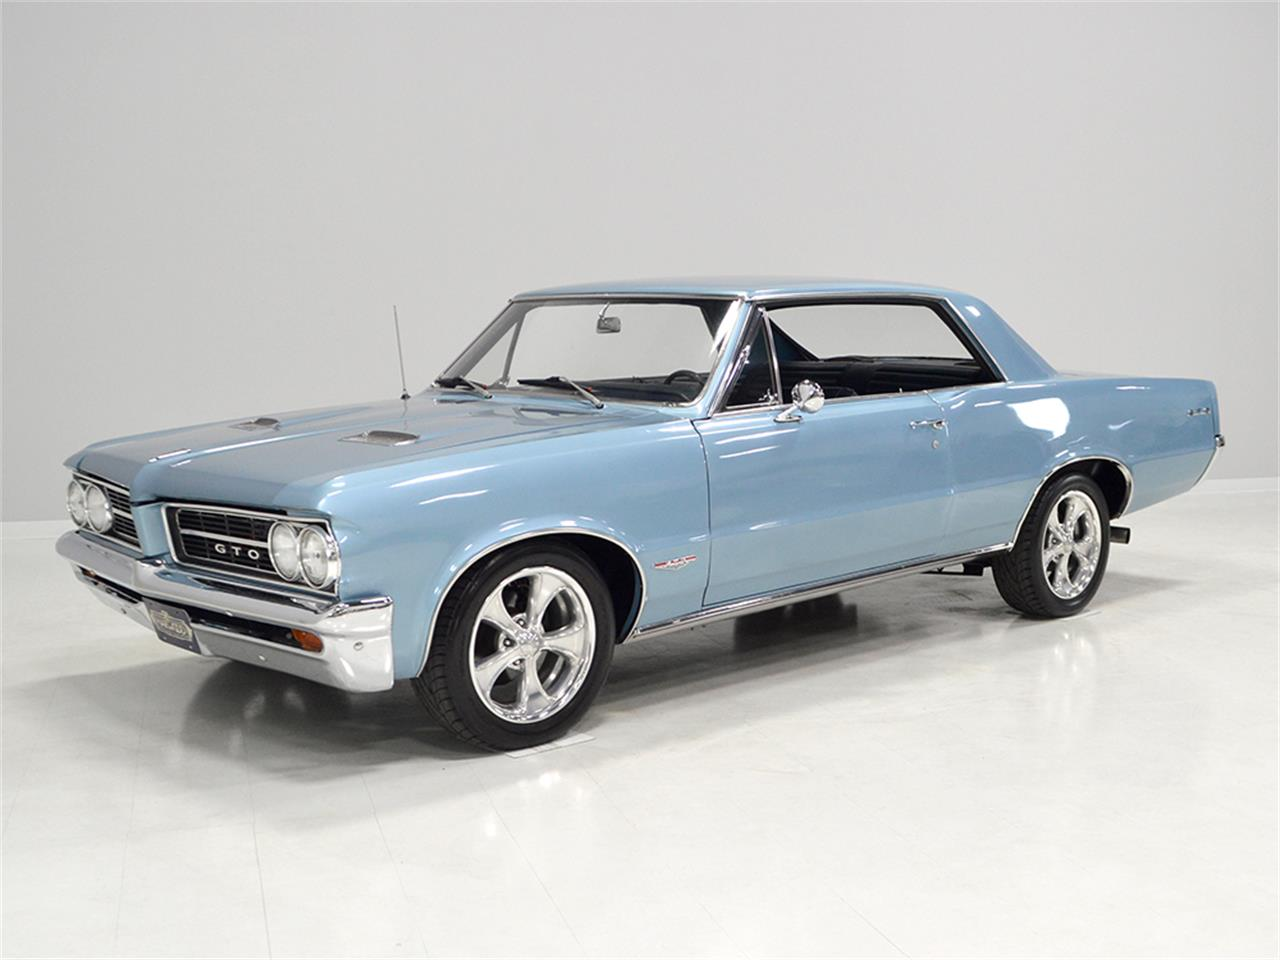 Large Picture of 1964 Pontiac GTO - $32,900.00 - MGNK